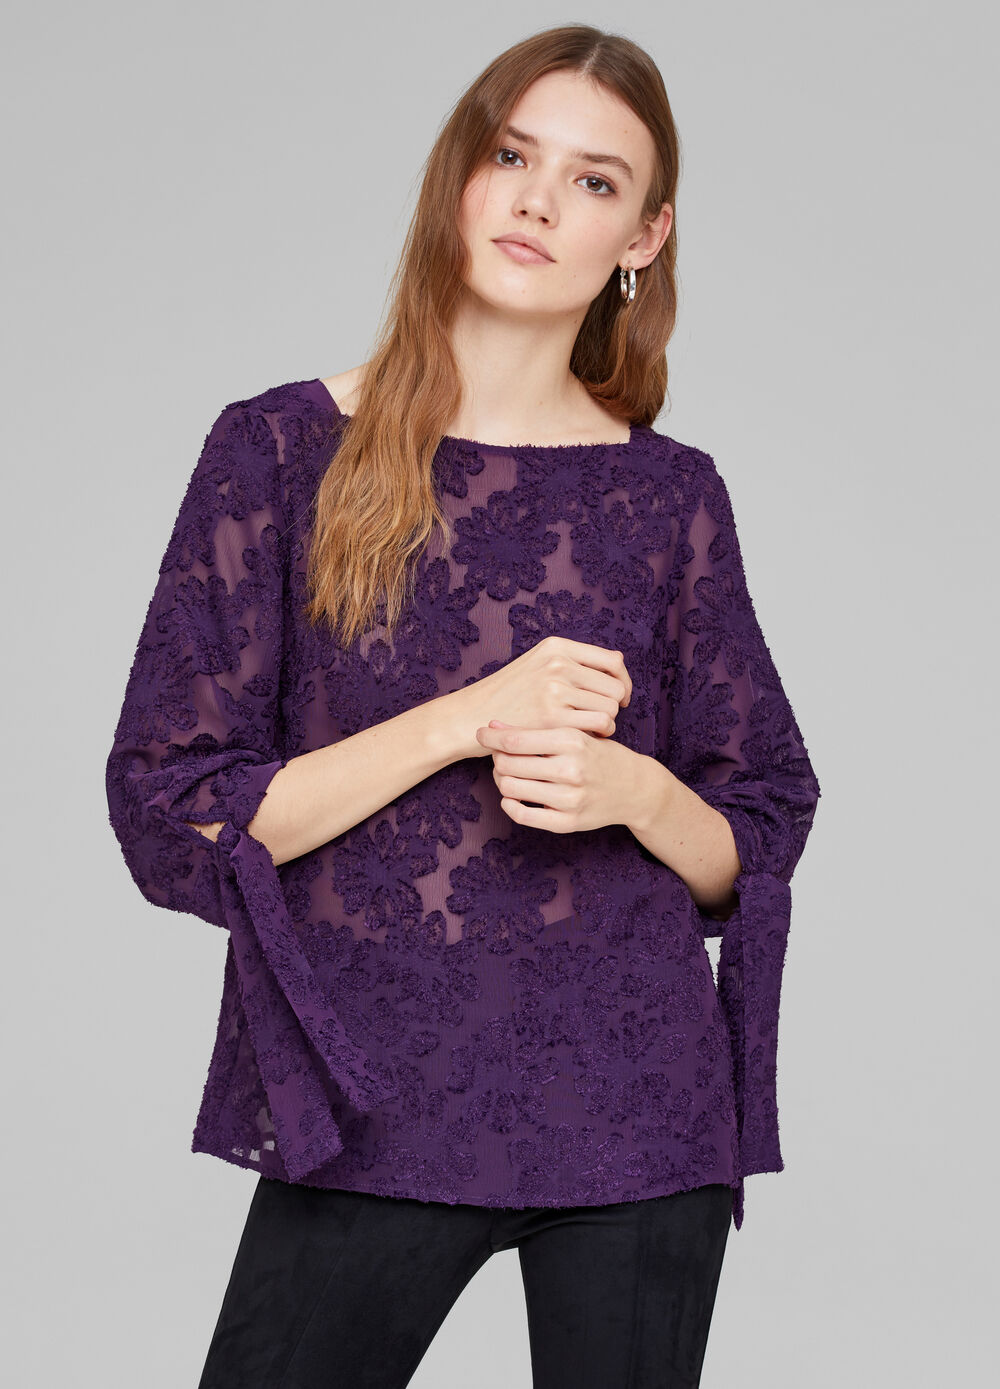 Semi-sheer embroidered blouse